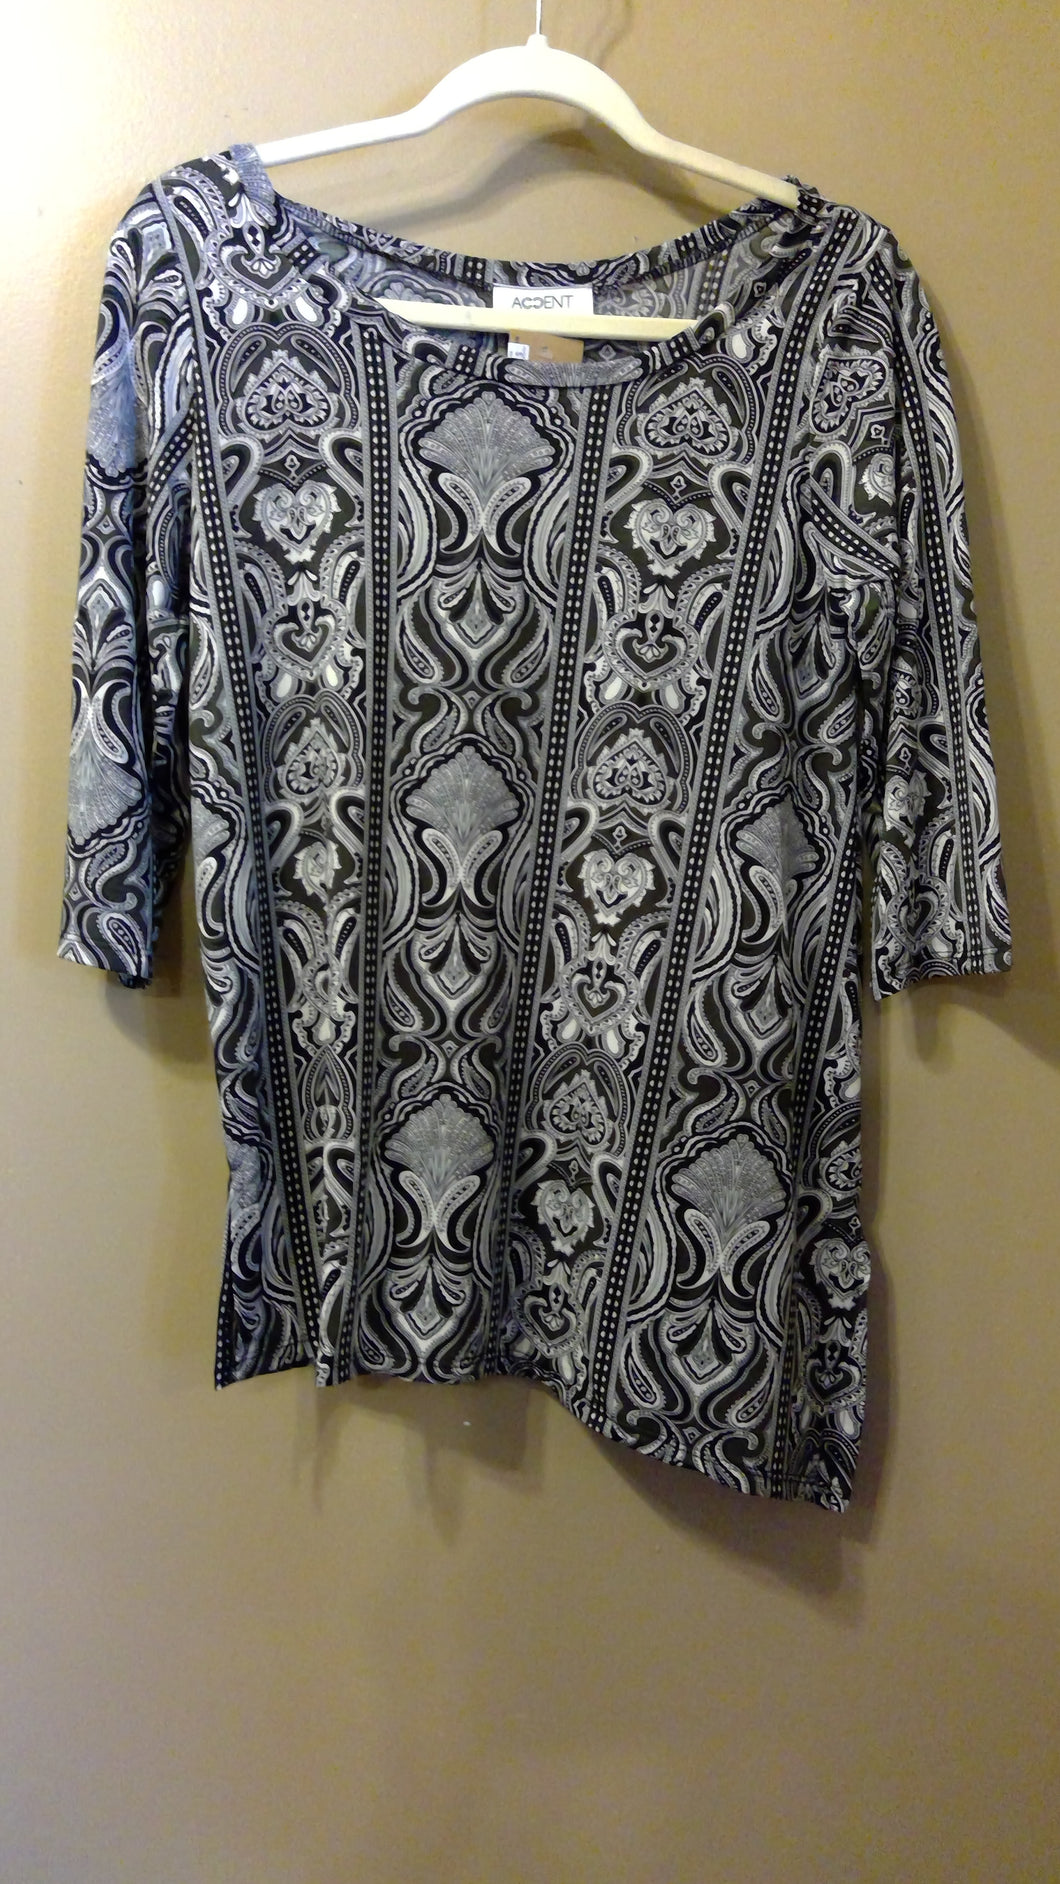 Monochrome Batik Magic Shirt